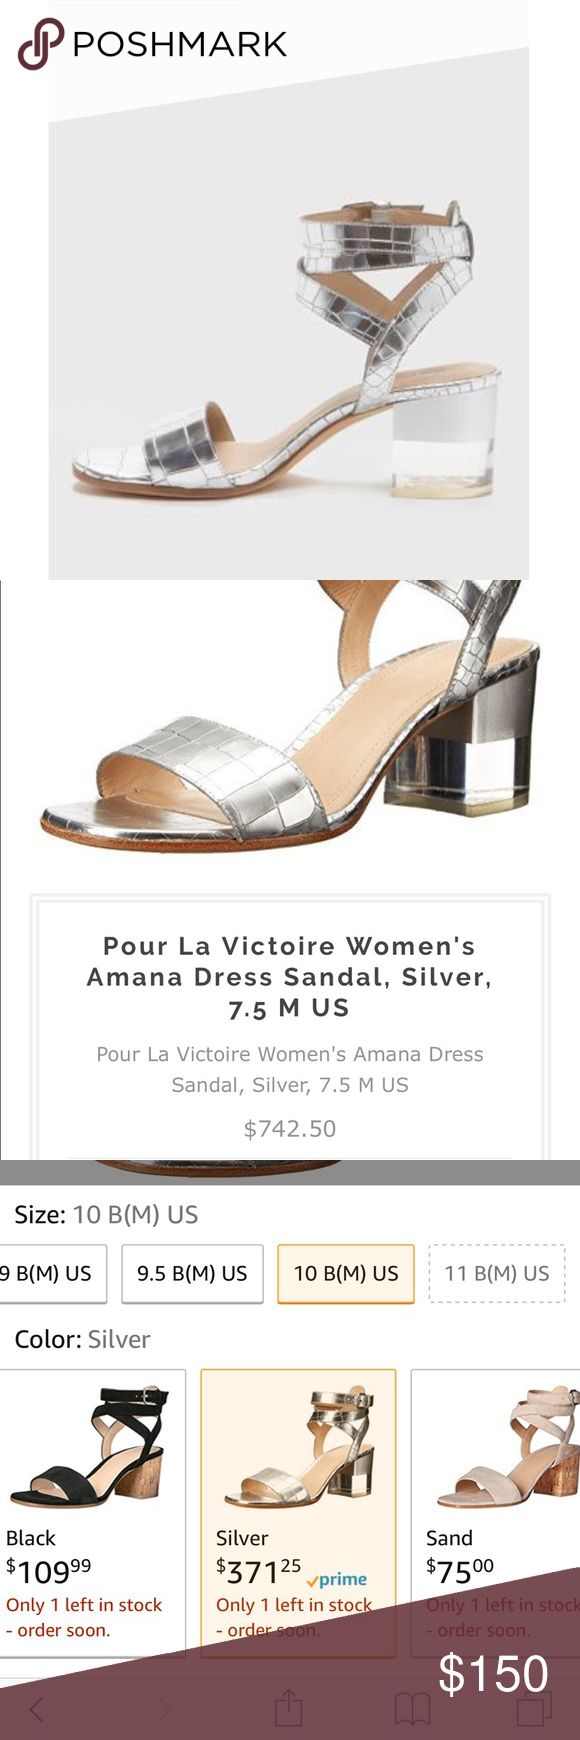 Pour La Victoire Amana silver dress sandal Sz 10 Brand new designer Pour La Victoire dress sandals in silver metallic. Sz 10, true to size. Unique clear heel and double wrap around ankle strap. So gorgeous!! You will definitely stand out when you wear these. Buy these on Amazon right now for $371.25!!! Pour La Victoire Shoes Sandals